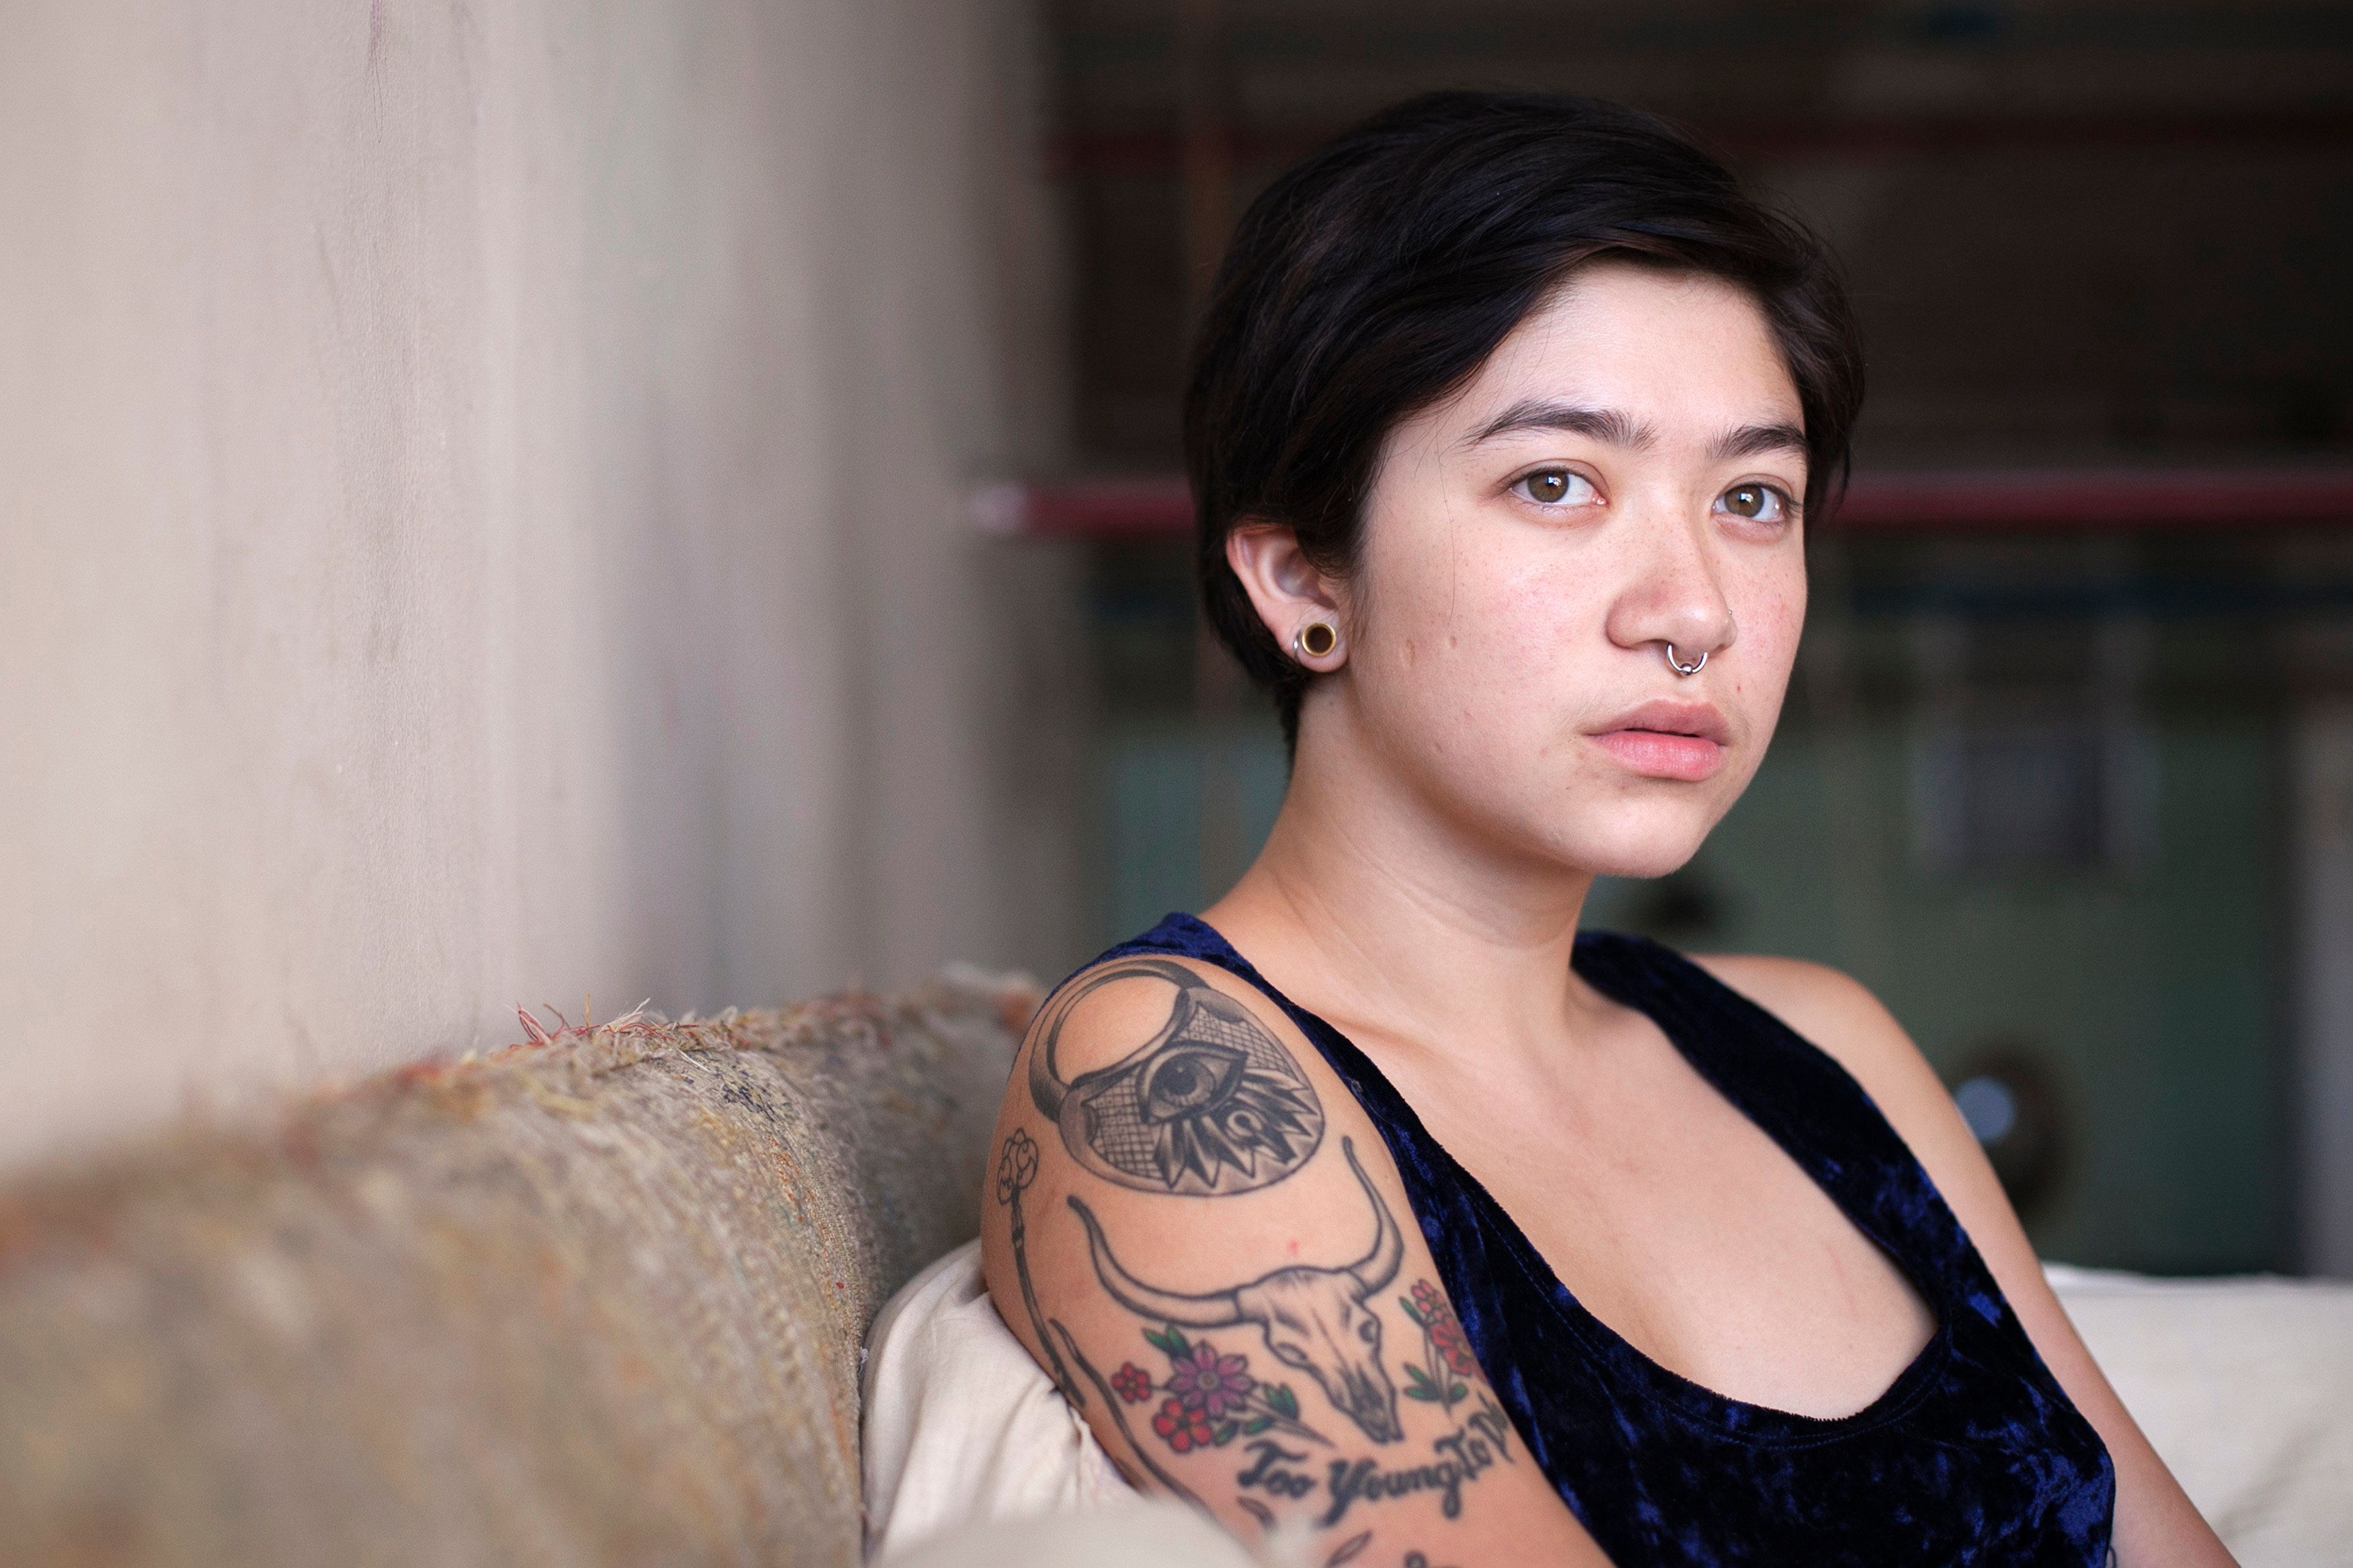 """Aiyana, a 22-year-old artist, poses for a portrait in her home in New York September 21, 2012. Aiyana says she was 20 years old when she became pregnant and had an abortion. """"He ended up not being as supportive as I thought he would be (at the immediate time). He did everything he could, aside from paying for it. I initially paid for everything out of pocket. Although I was reimbursed for it - but to cover the initial costs, I took care of all of that. After it happened, when I did feel like I needed a lot of emotional support, he didn't really provide that. So that was a contributing factor to us breaking up,� Aiyana said. Picture taken September 21, 2012.  REUTERS/Allison Joyce  (UNITED STATES - Tags: SOCIETY) - RTX13R6U"""